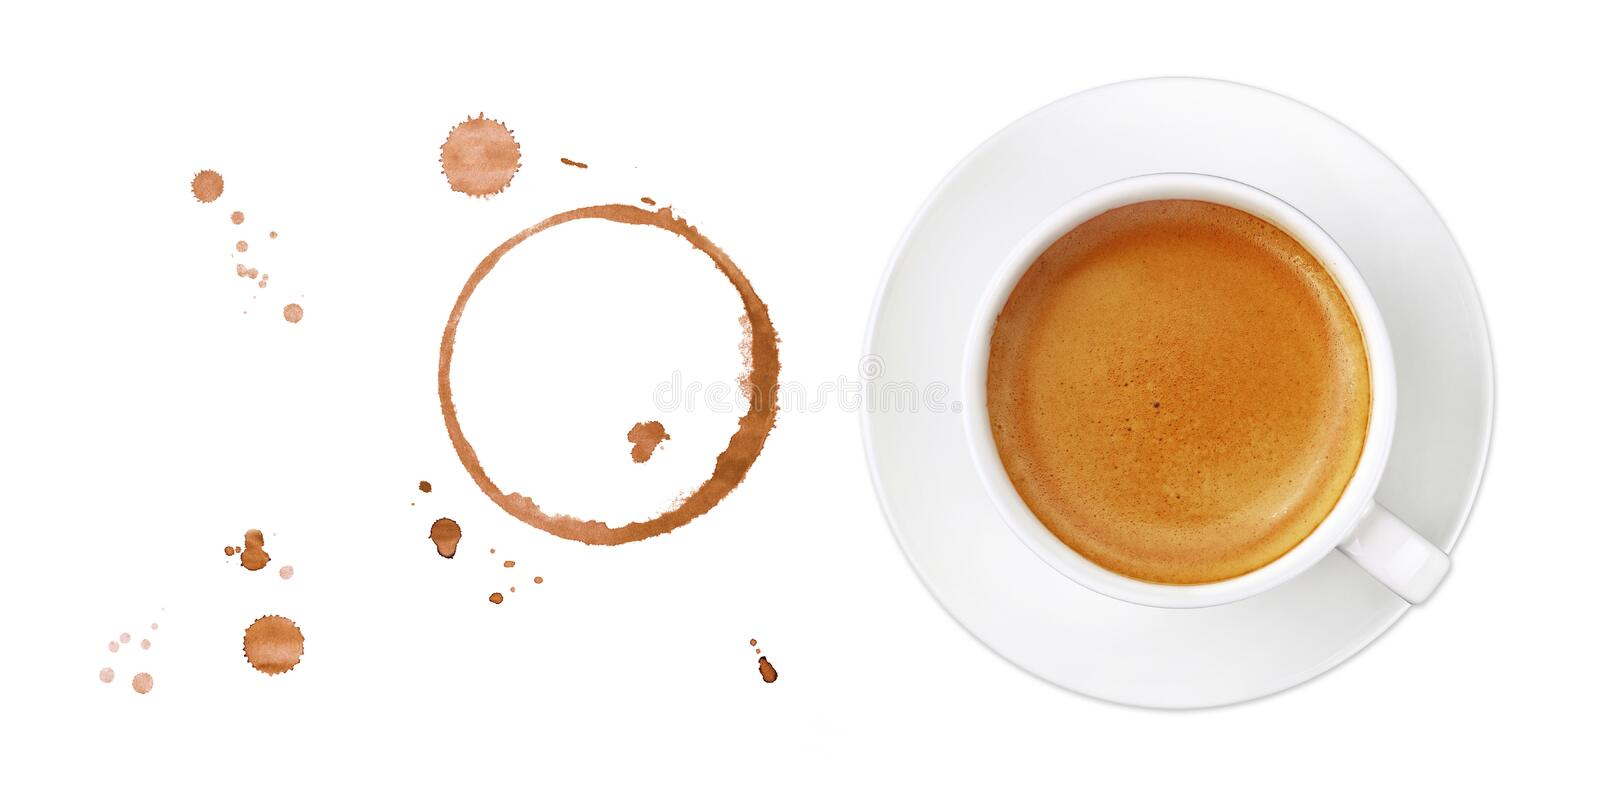 Coffee cup, stains and drops on white background royalty free stock photo